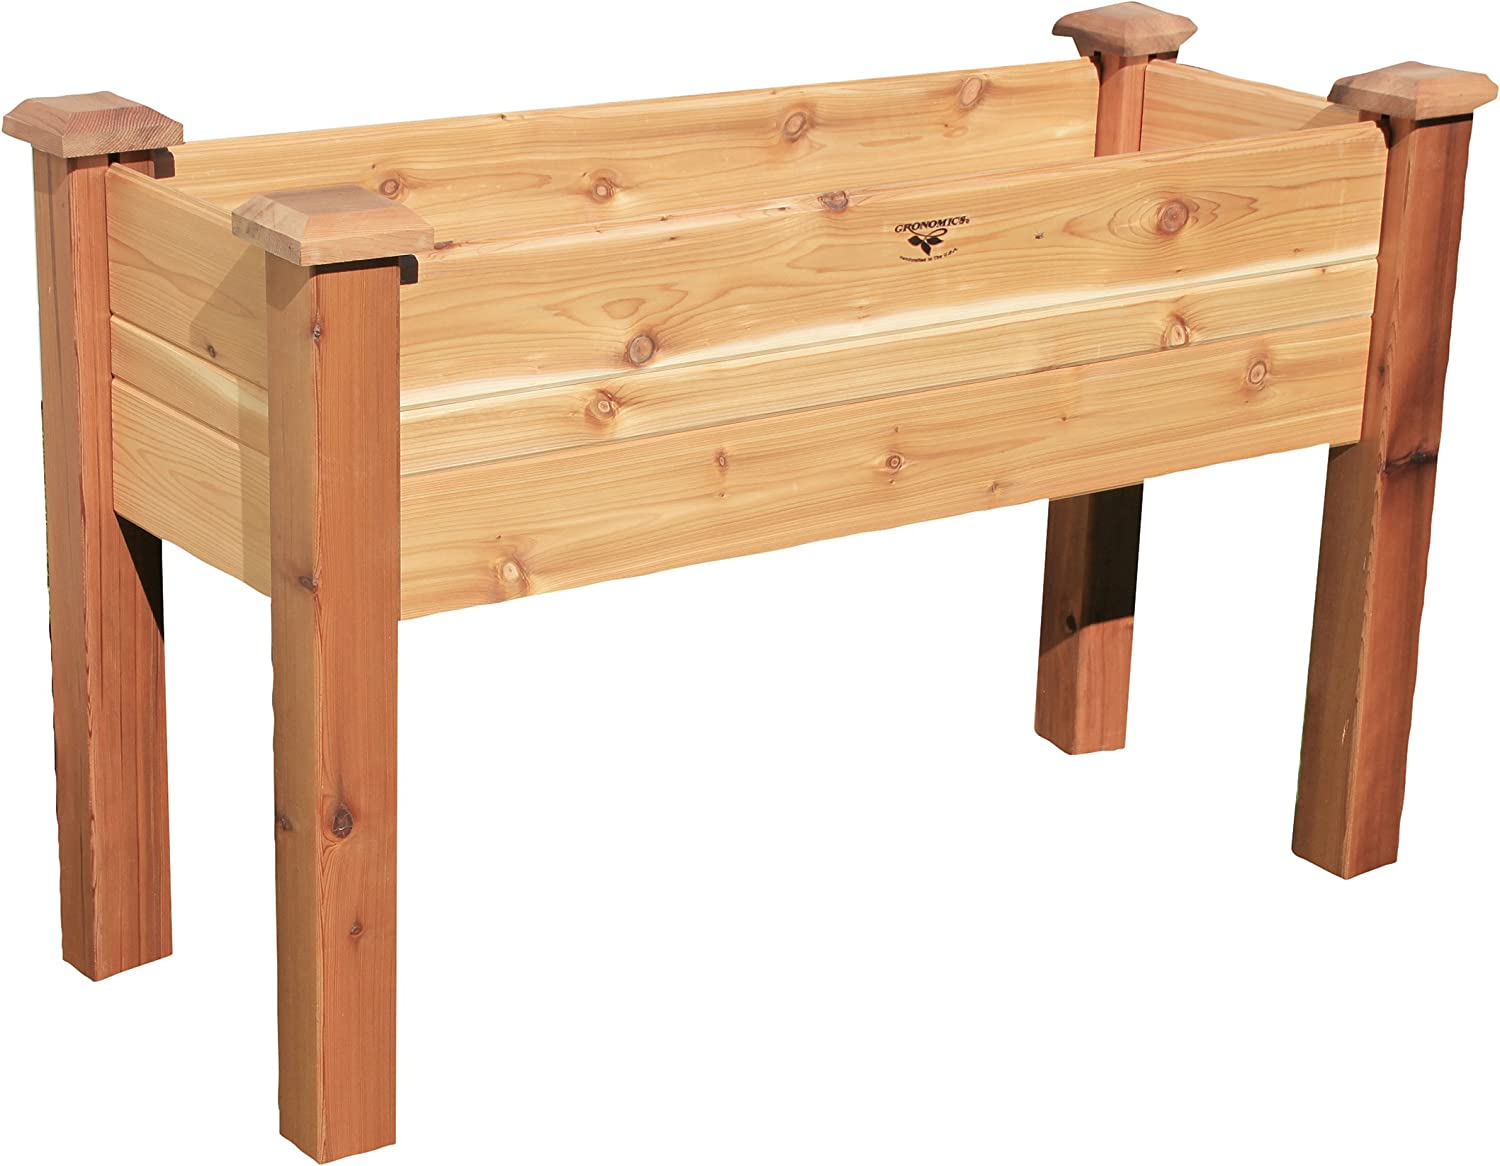 Gronomics EGB 18-48 10-Inch Deep Elevated Garden Bed, 18 by 48 by 32-Inch